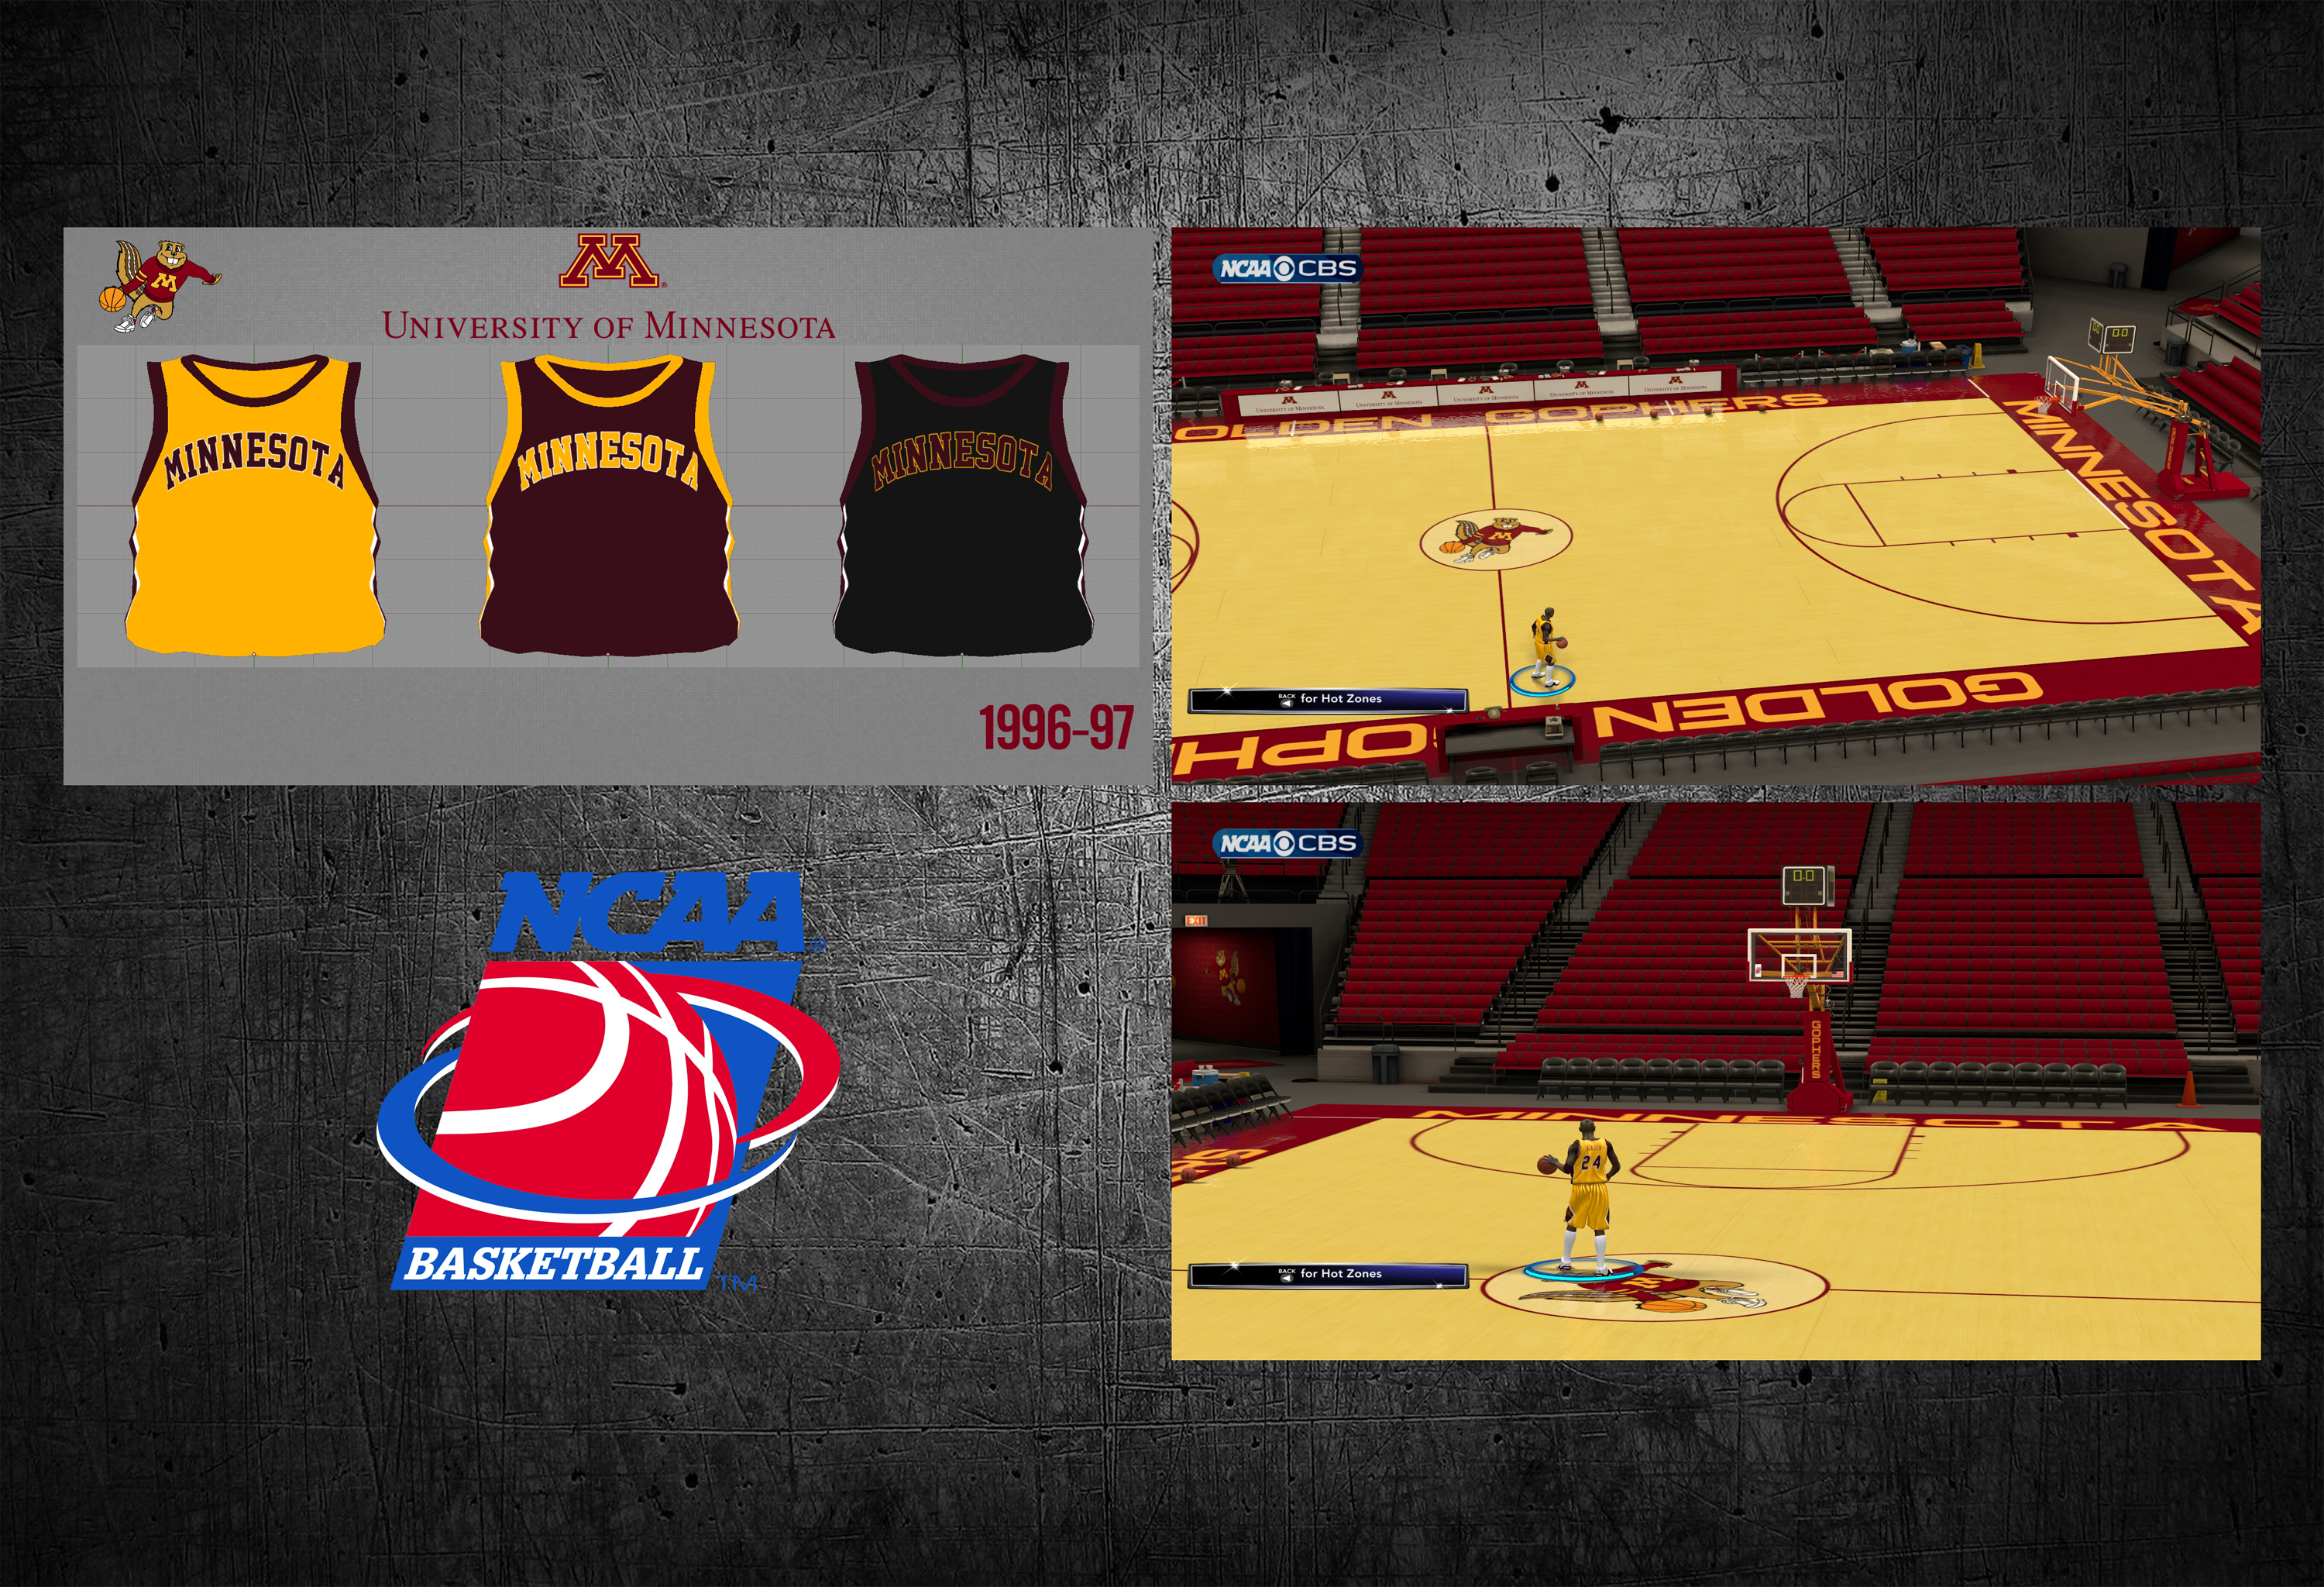 1996-97 Minnesota Golden Gophers Jersey & Court